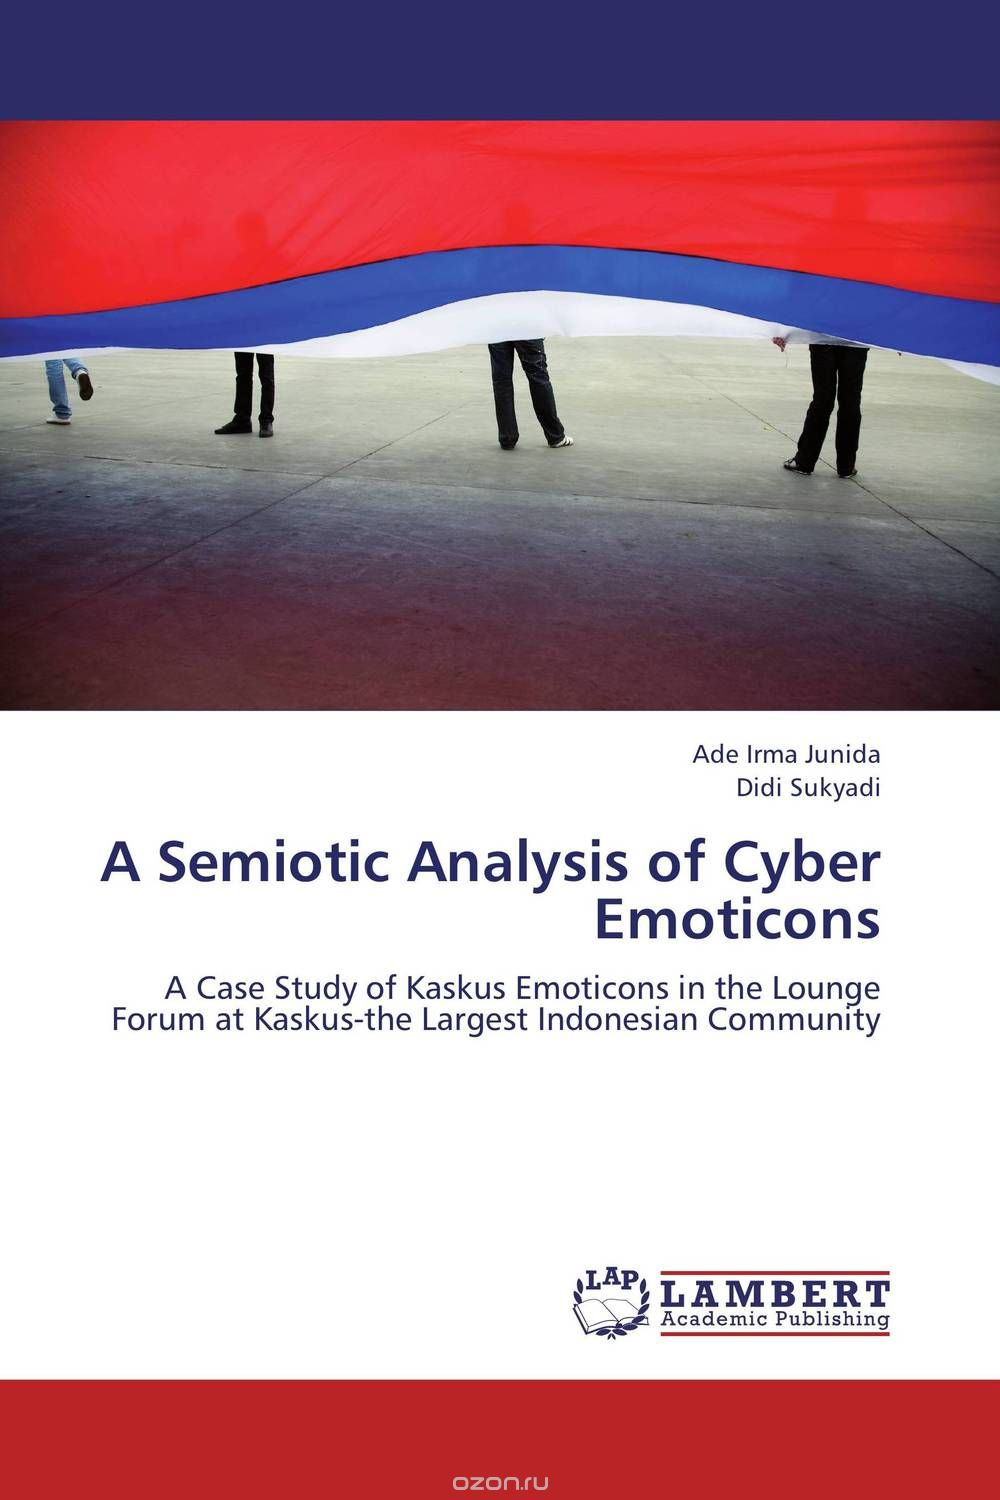 A Semiotic Analysis of Cyber Emoticons